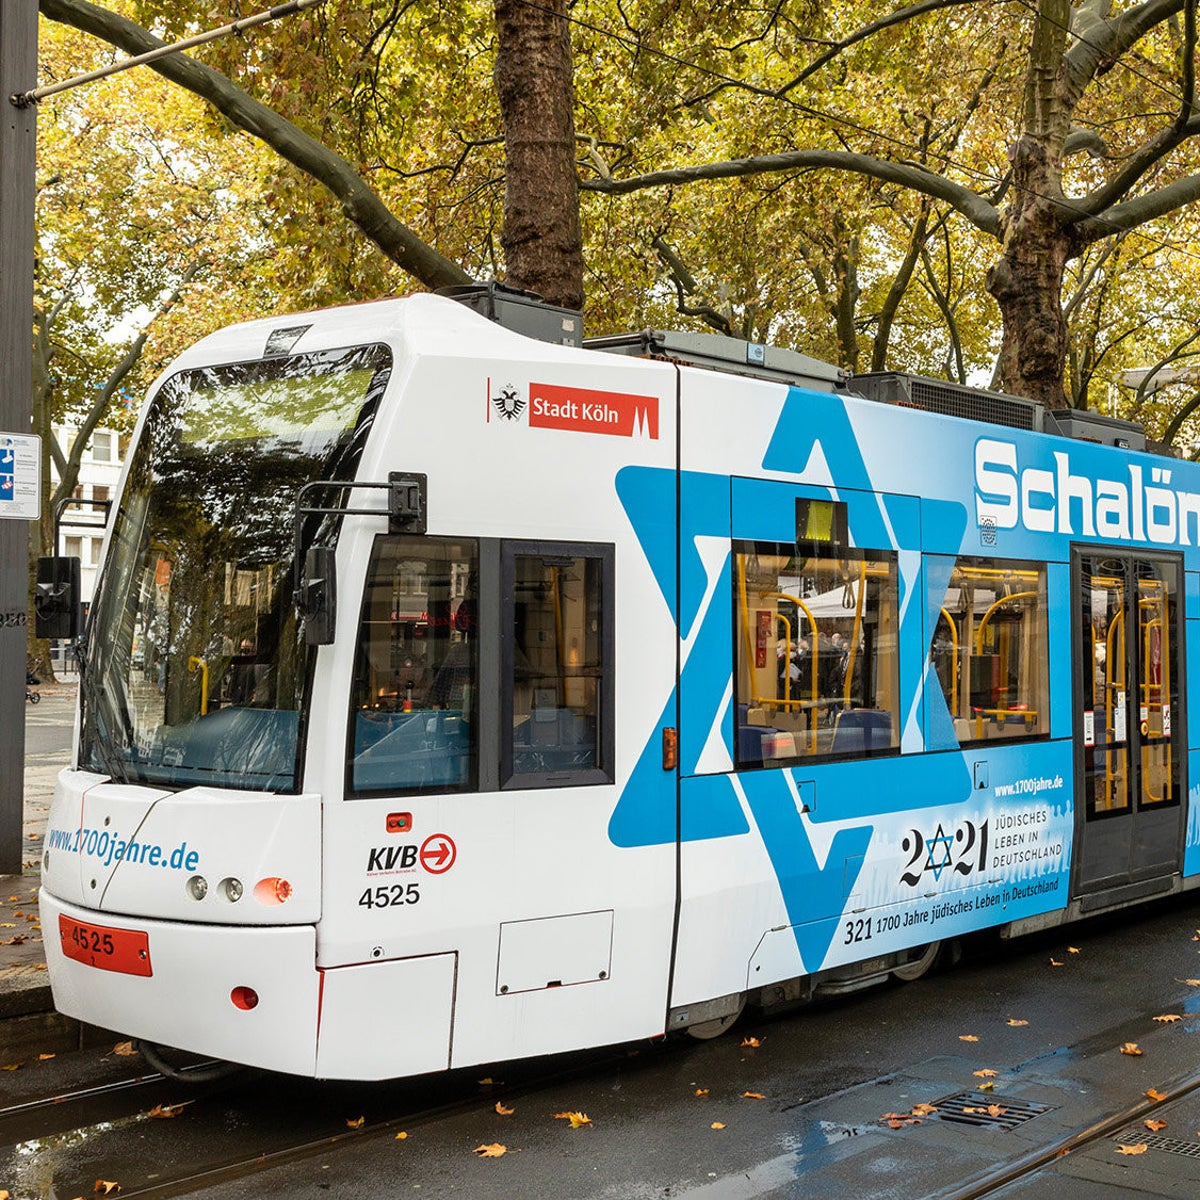 The Cologne tram with the Star of David motif.